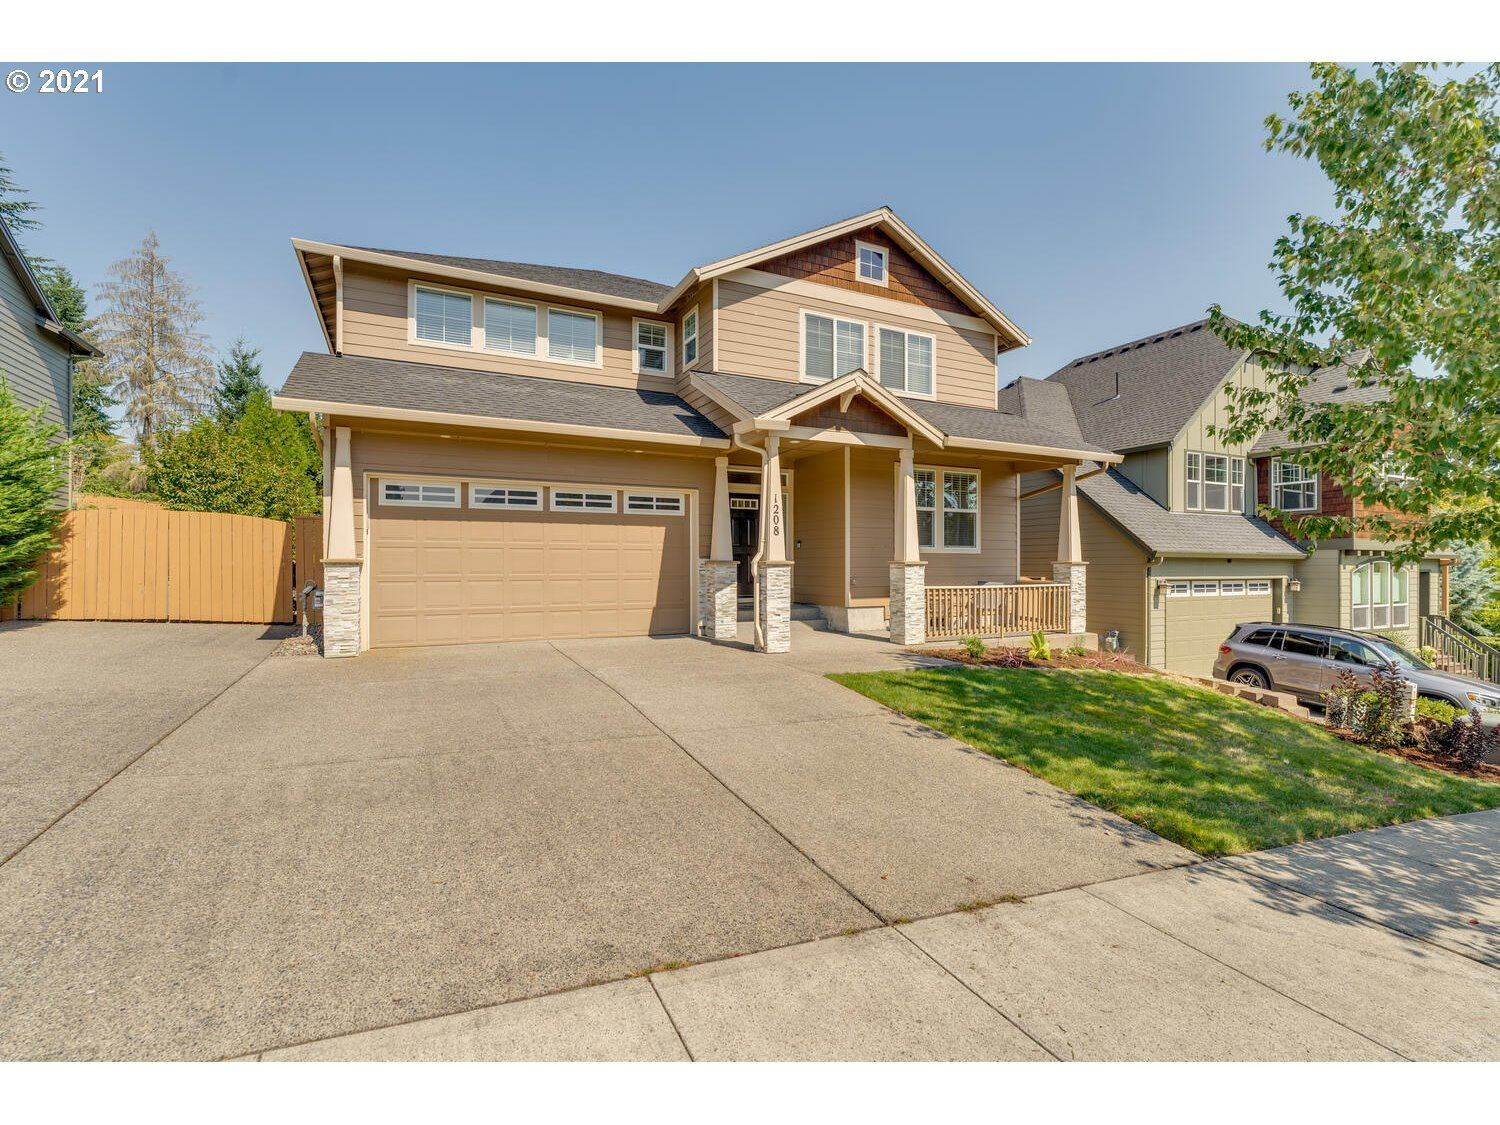 1208 NW 111TH ST, Vancouver, WA 98685 - MLS#: 21579267